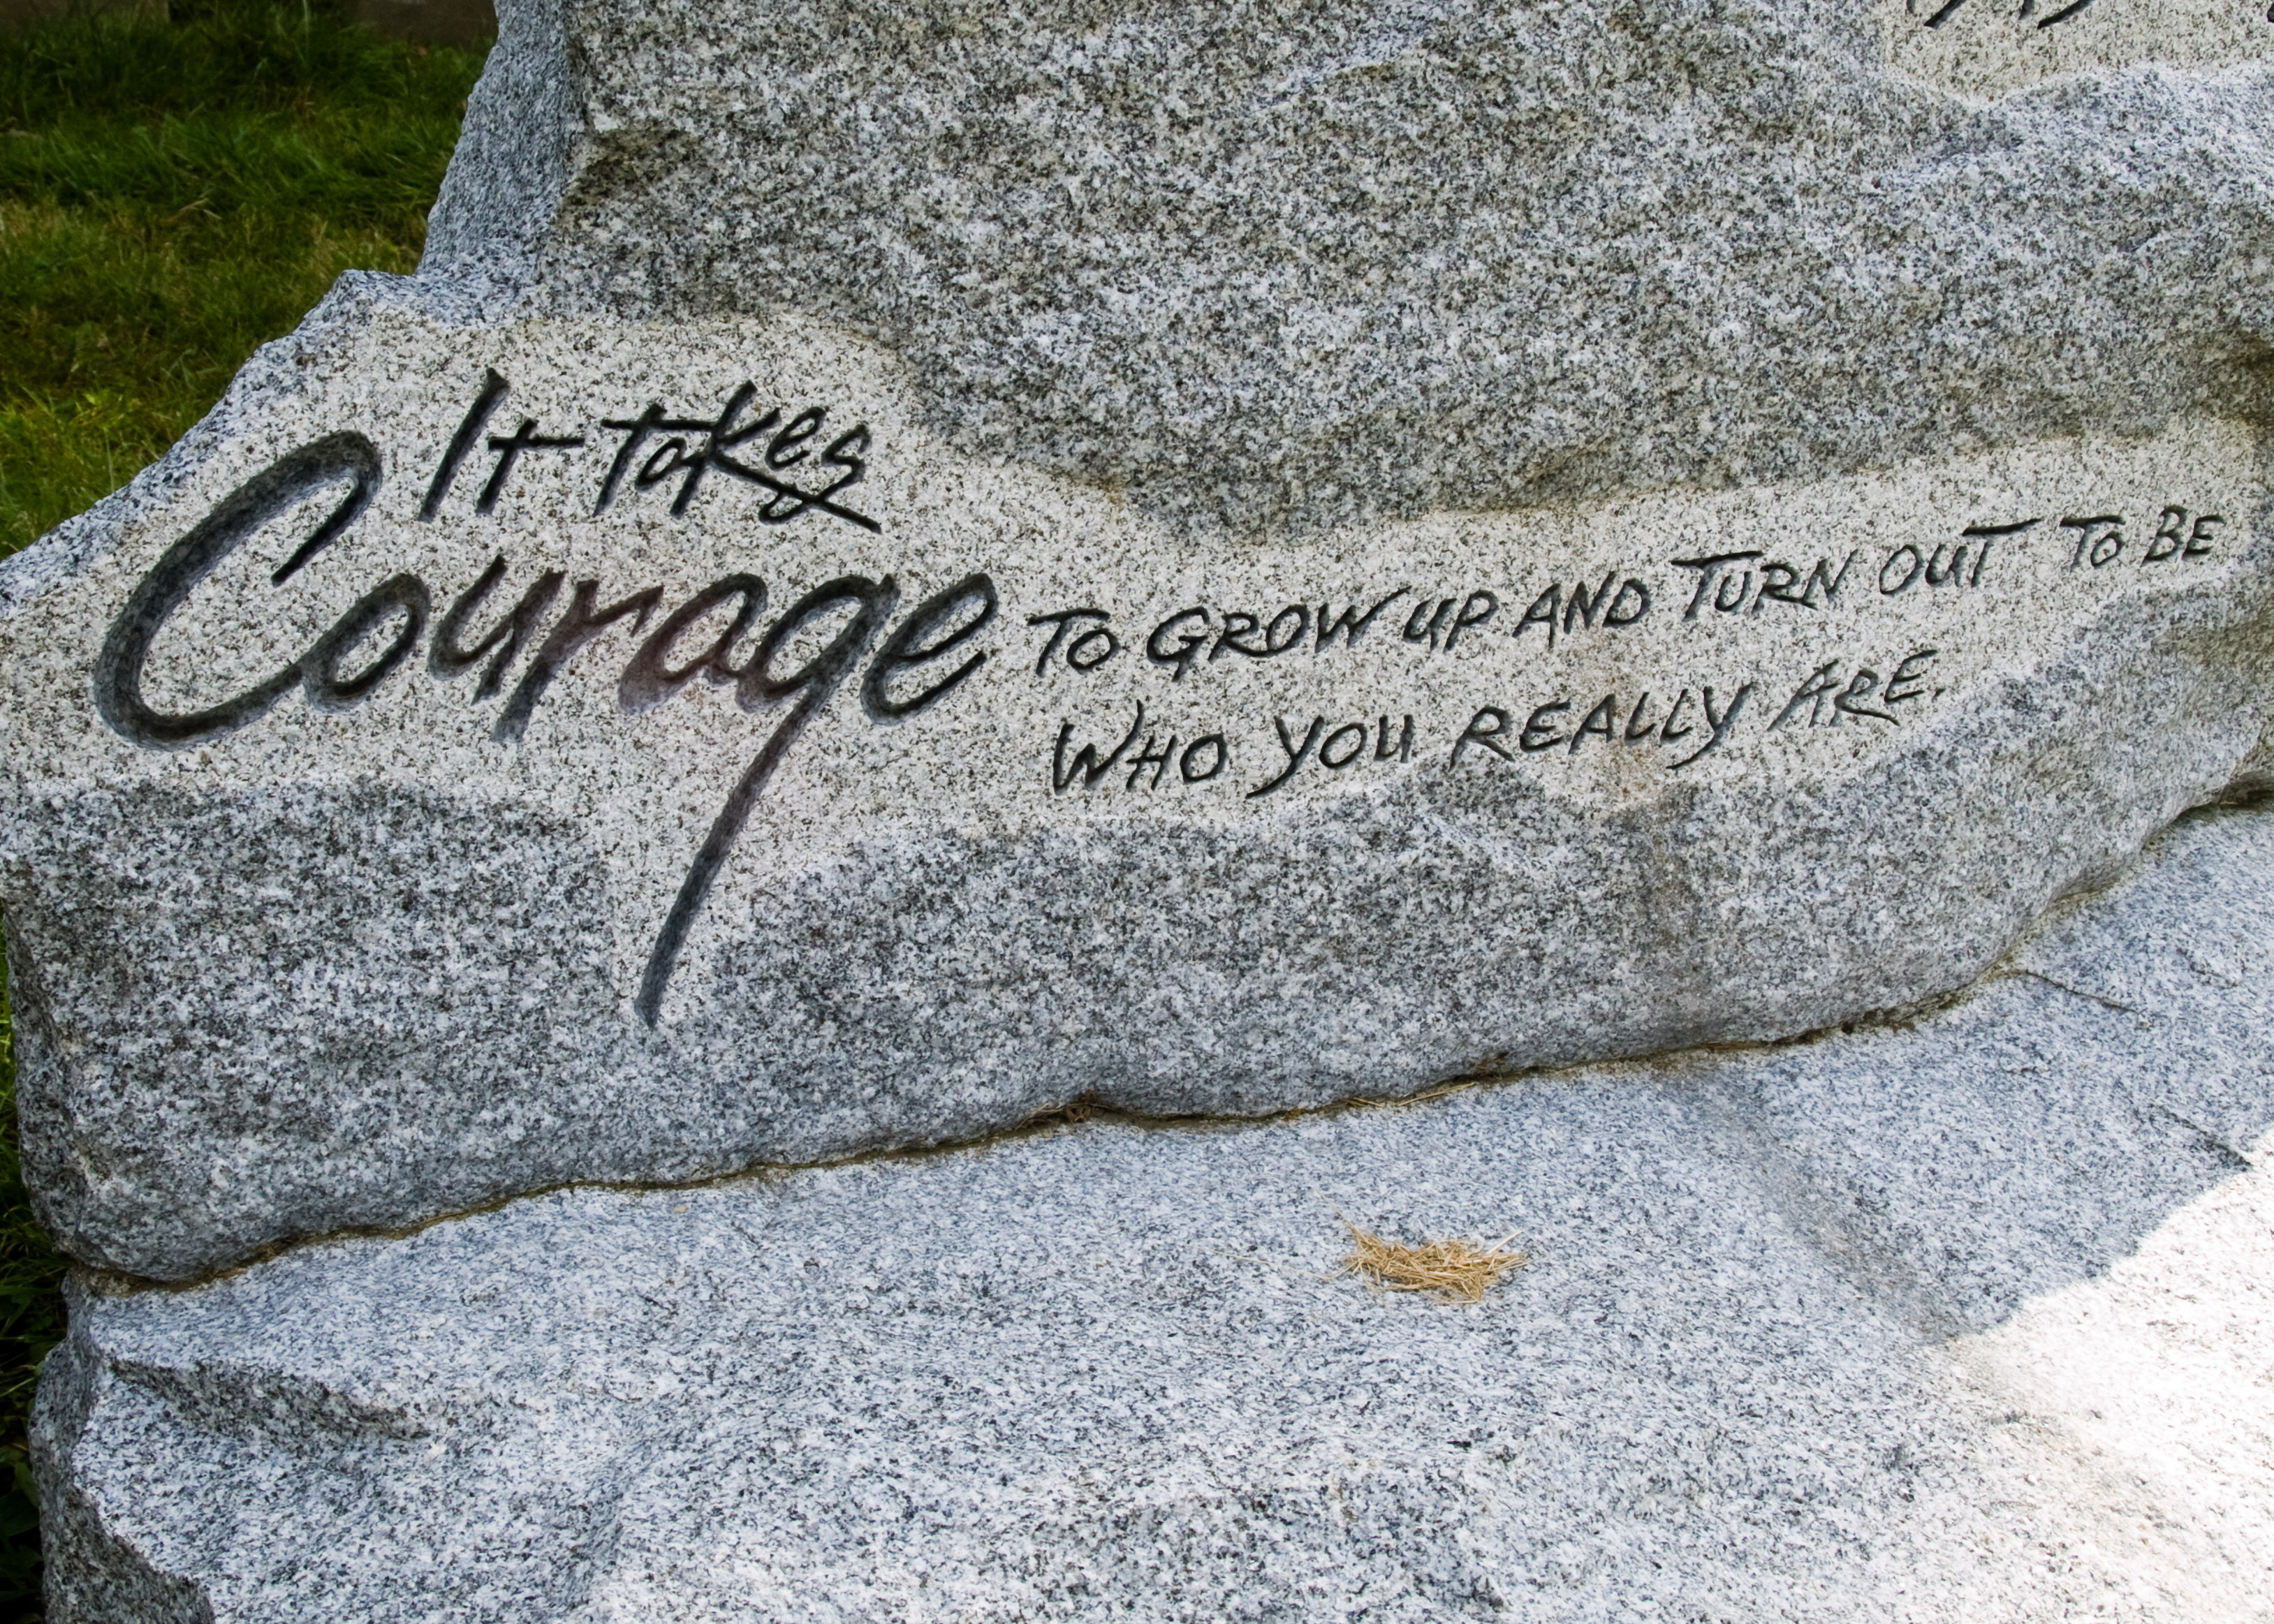 It takes courage to grow up and turn out to be who you really are - glaube an Dich